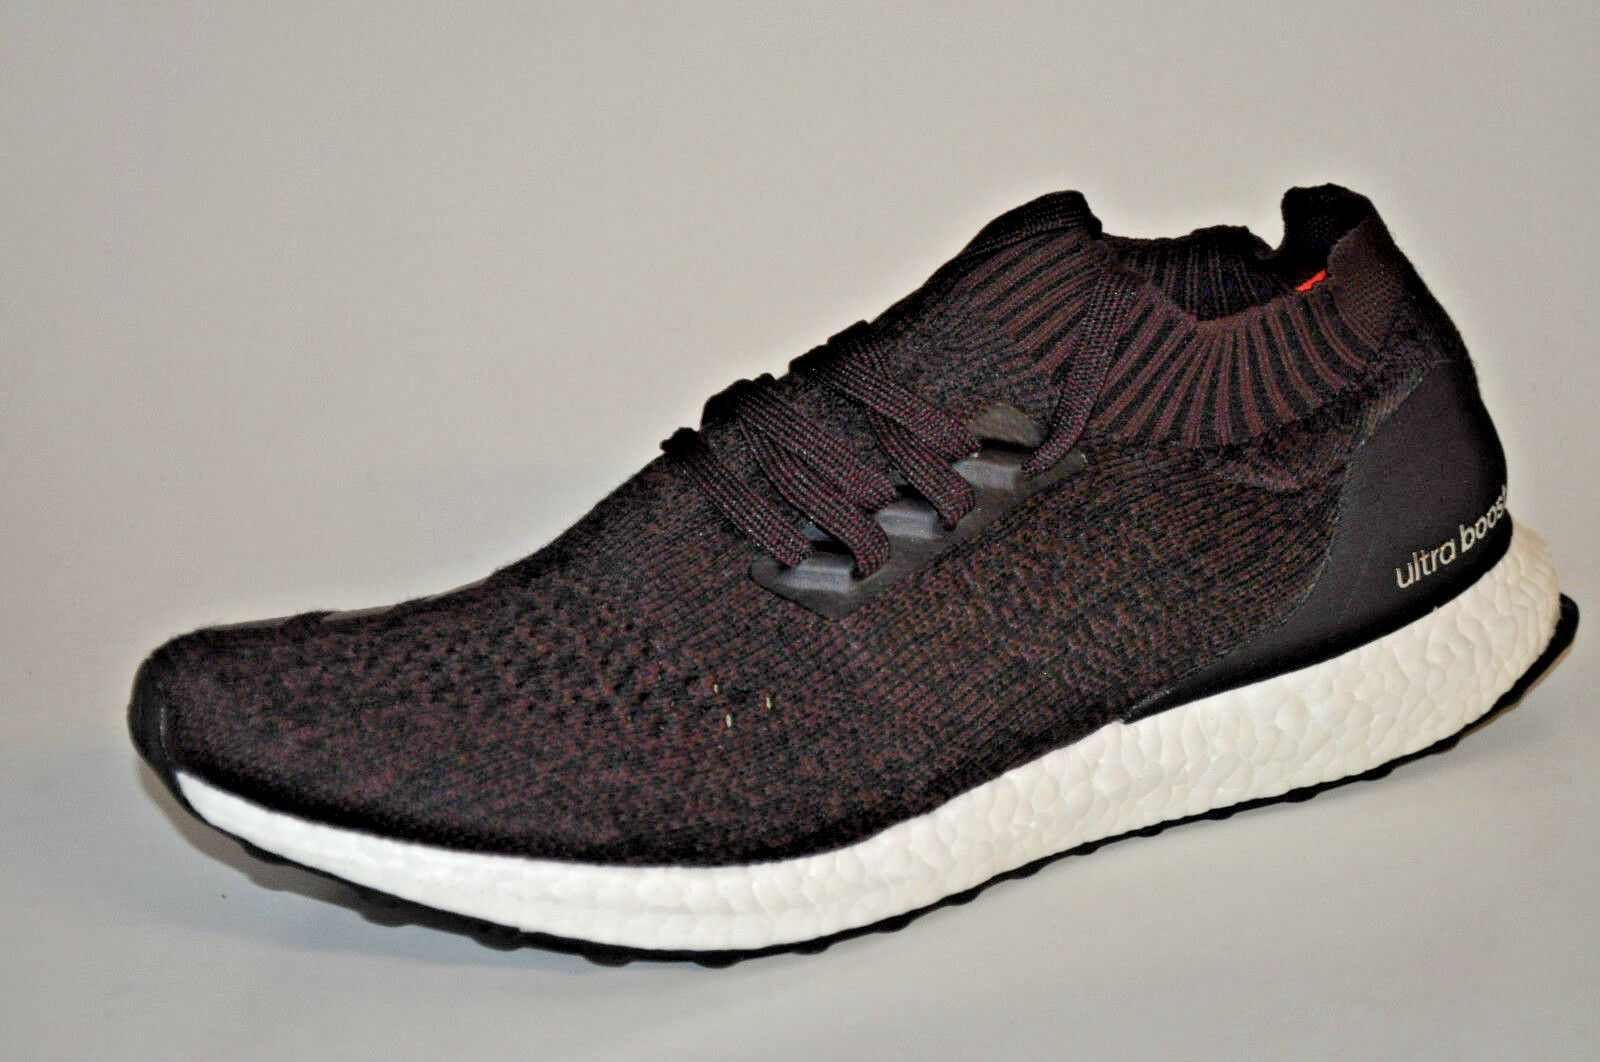 ADIDAS ultraboost Uncaged Uncaged Uncaged by2552 torsione Core nero Dark Burgundy Nero dbd3eb